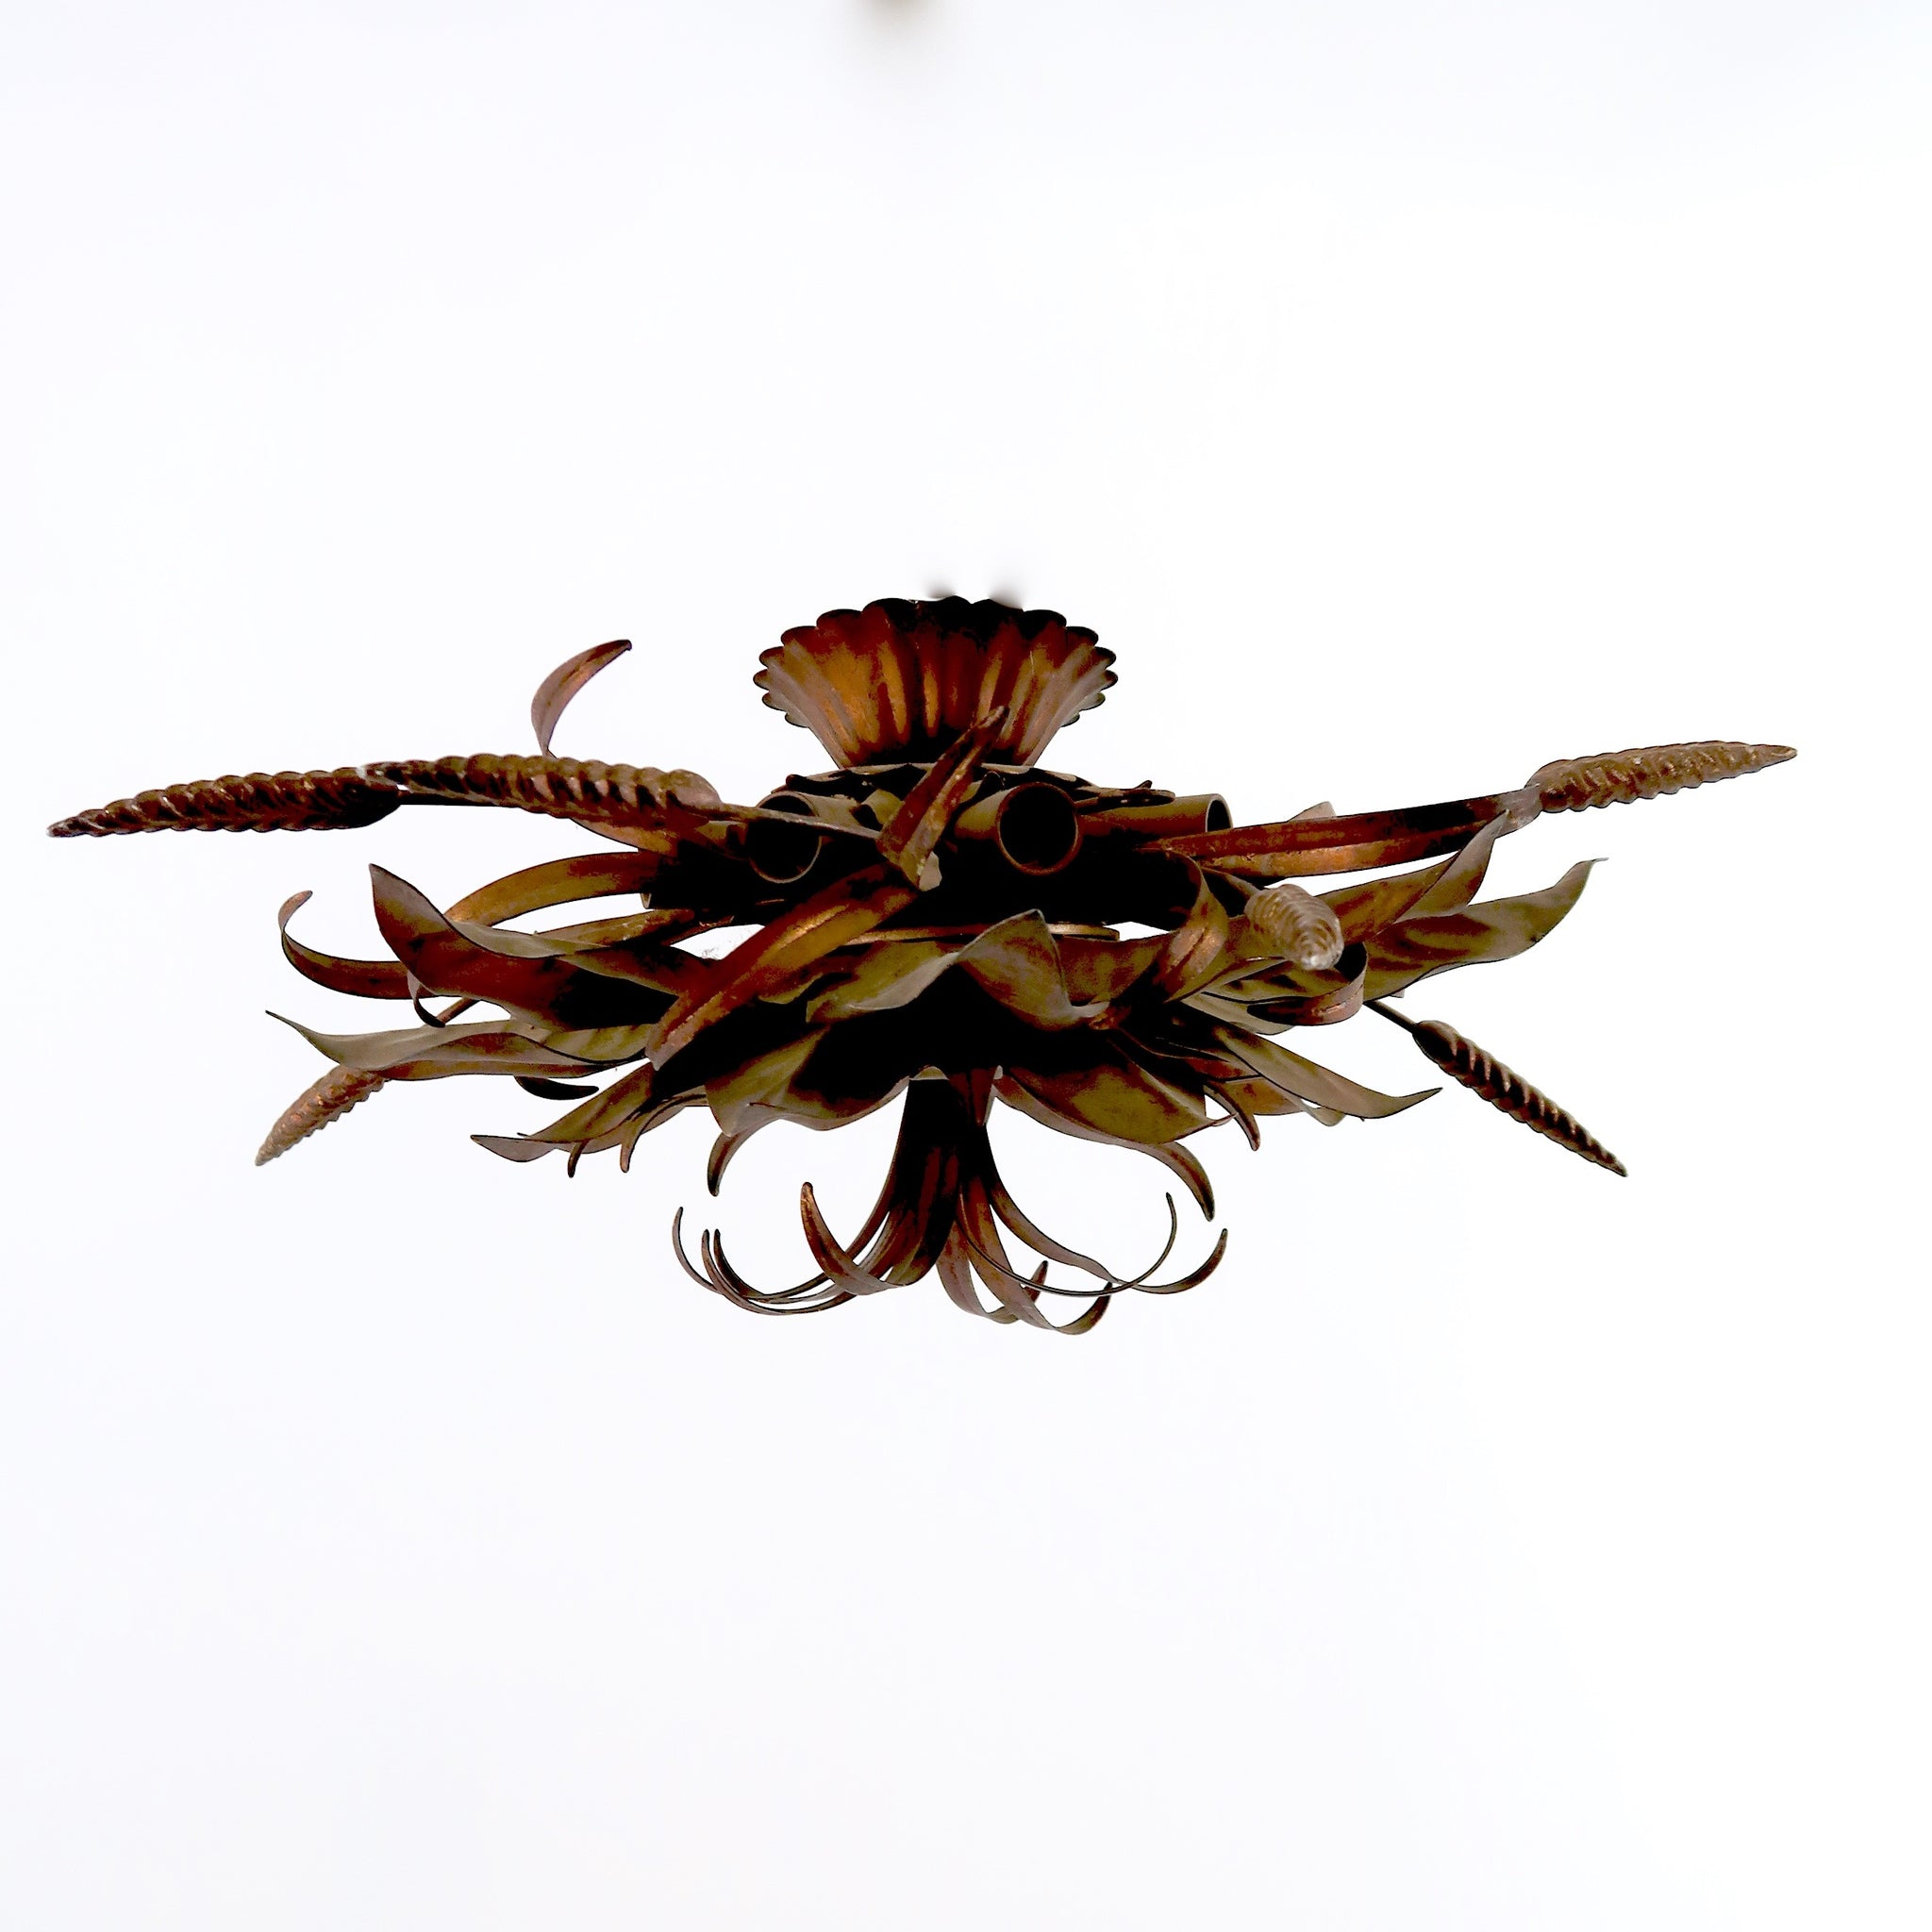 Italian gilt metal ceiling light with decorative leaves and wheatsheafs.